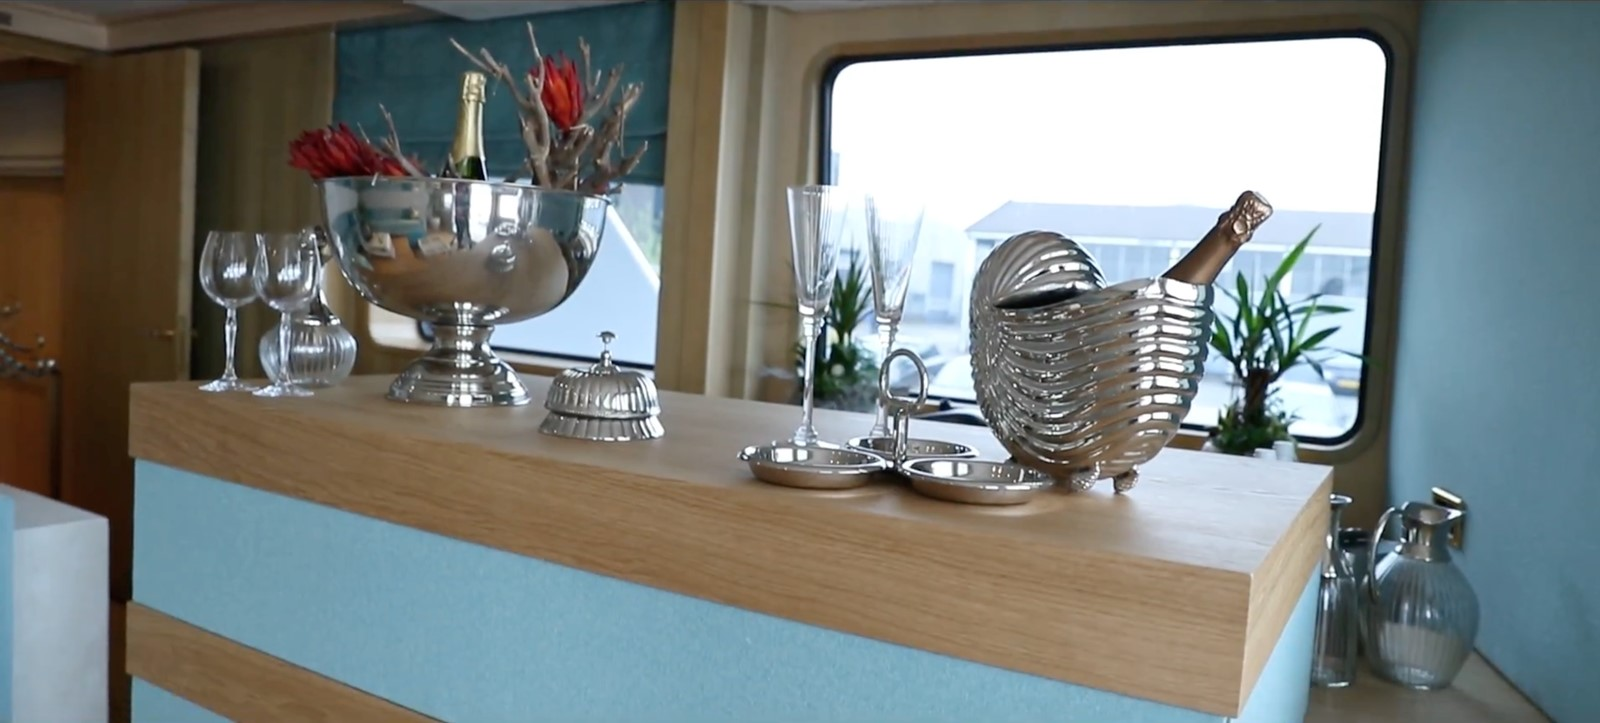 Skylounge - 162 OCEANCO For Sale